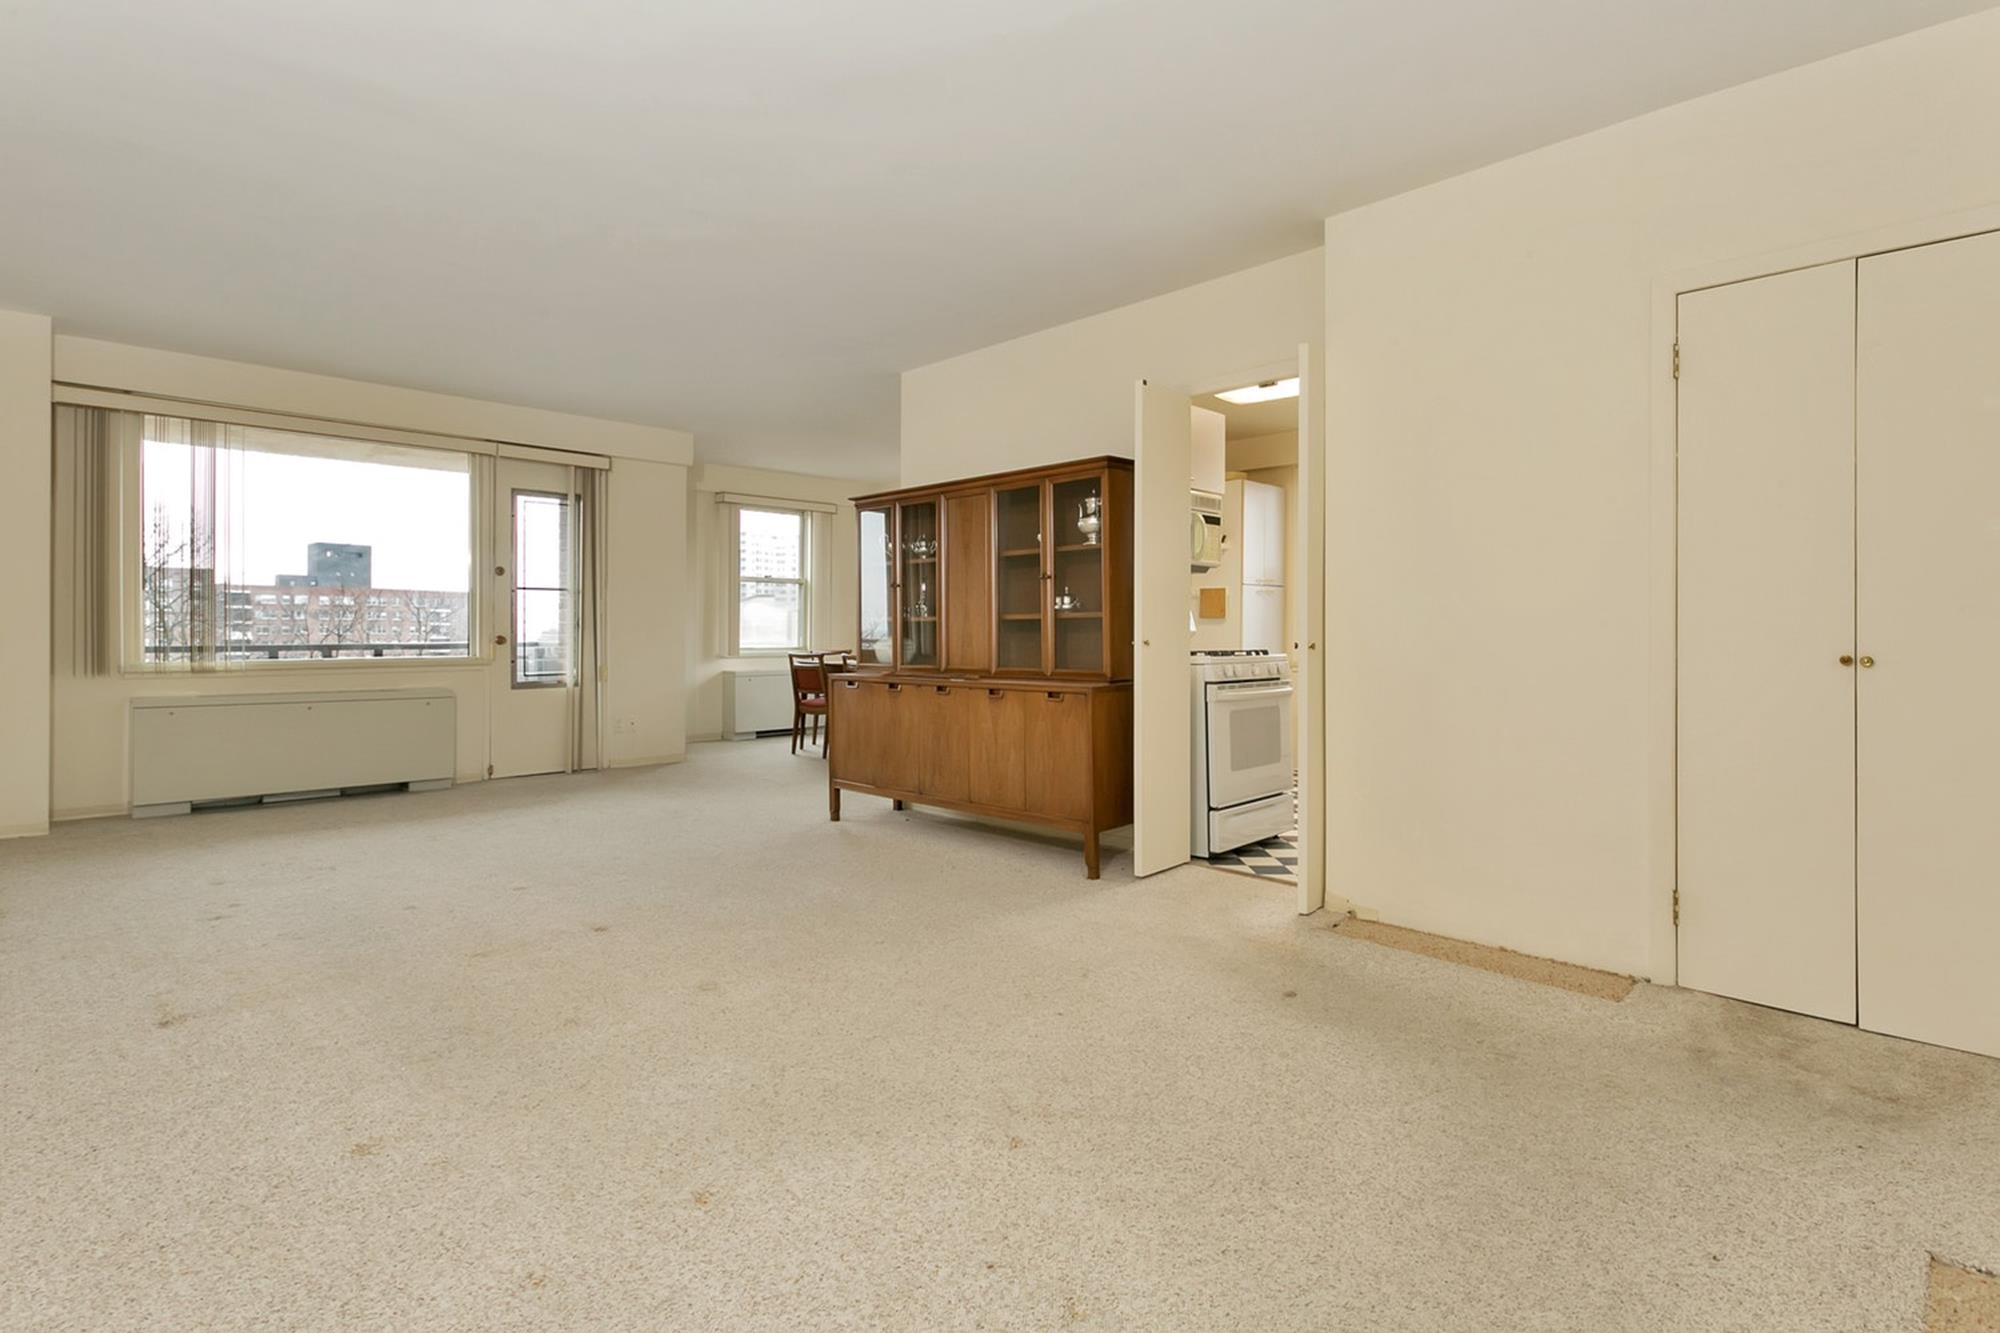 WEST OF PARKWAY: Luxury 3-Bd. Co-op w/ Hudson River View, Balcony, Parking, Doormen & Pool at 3777 Independence Ave.